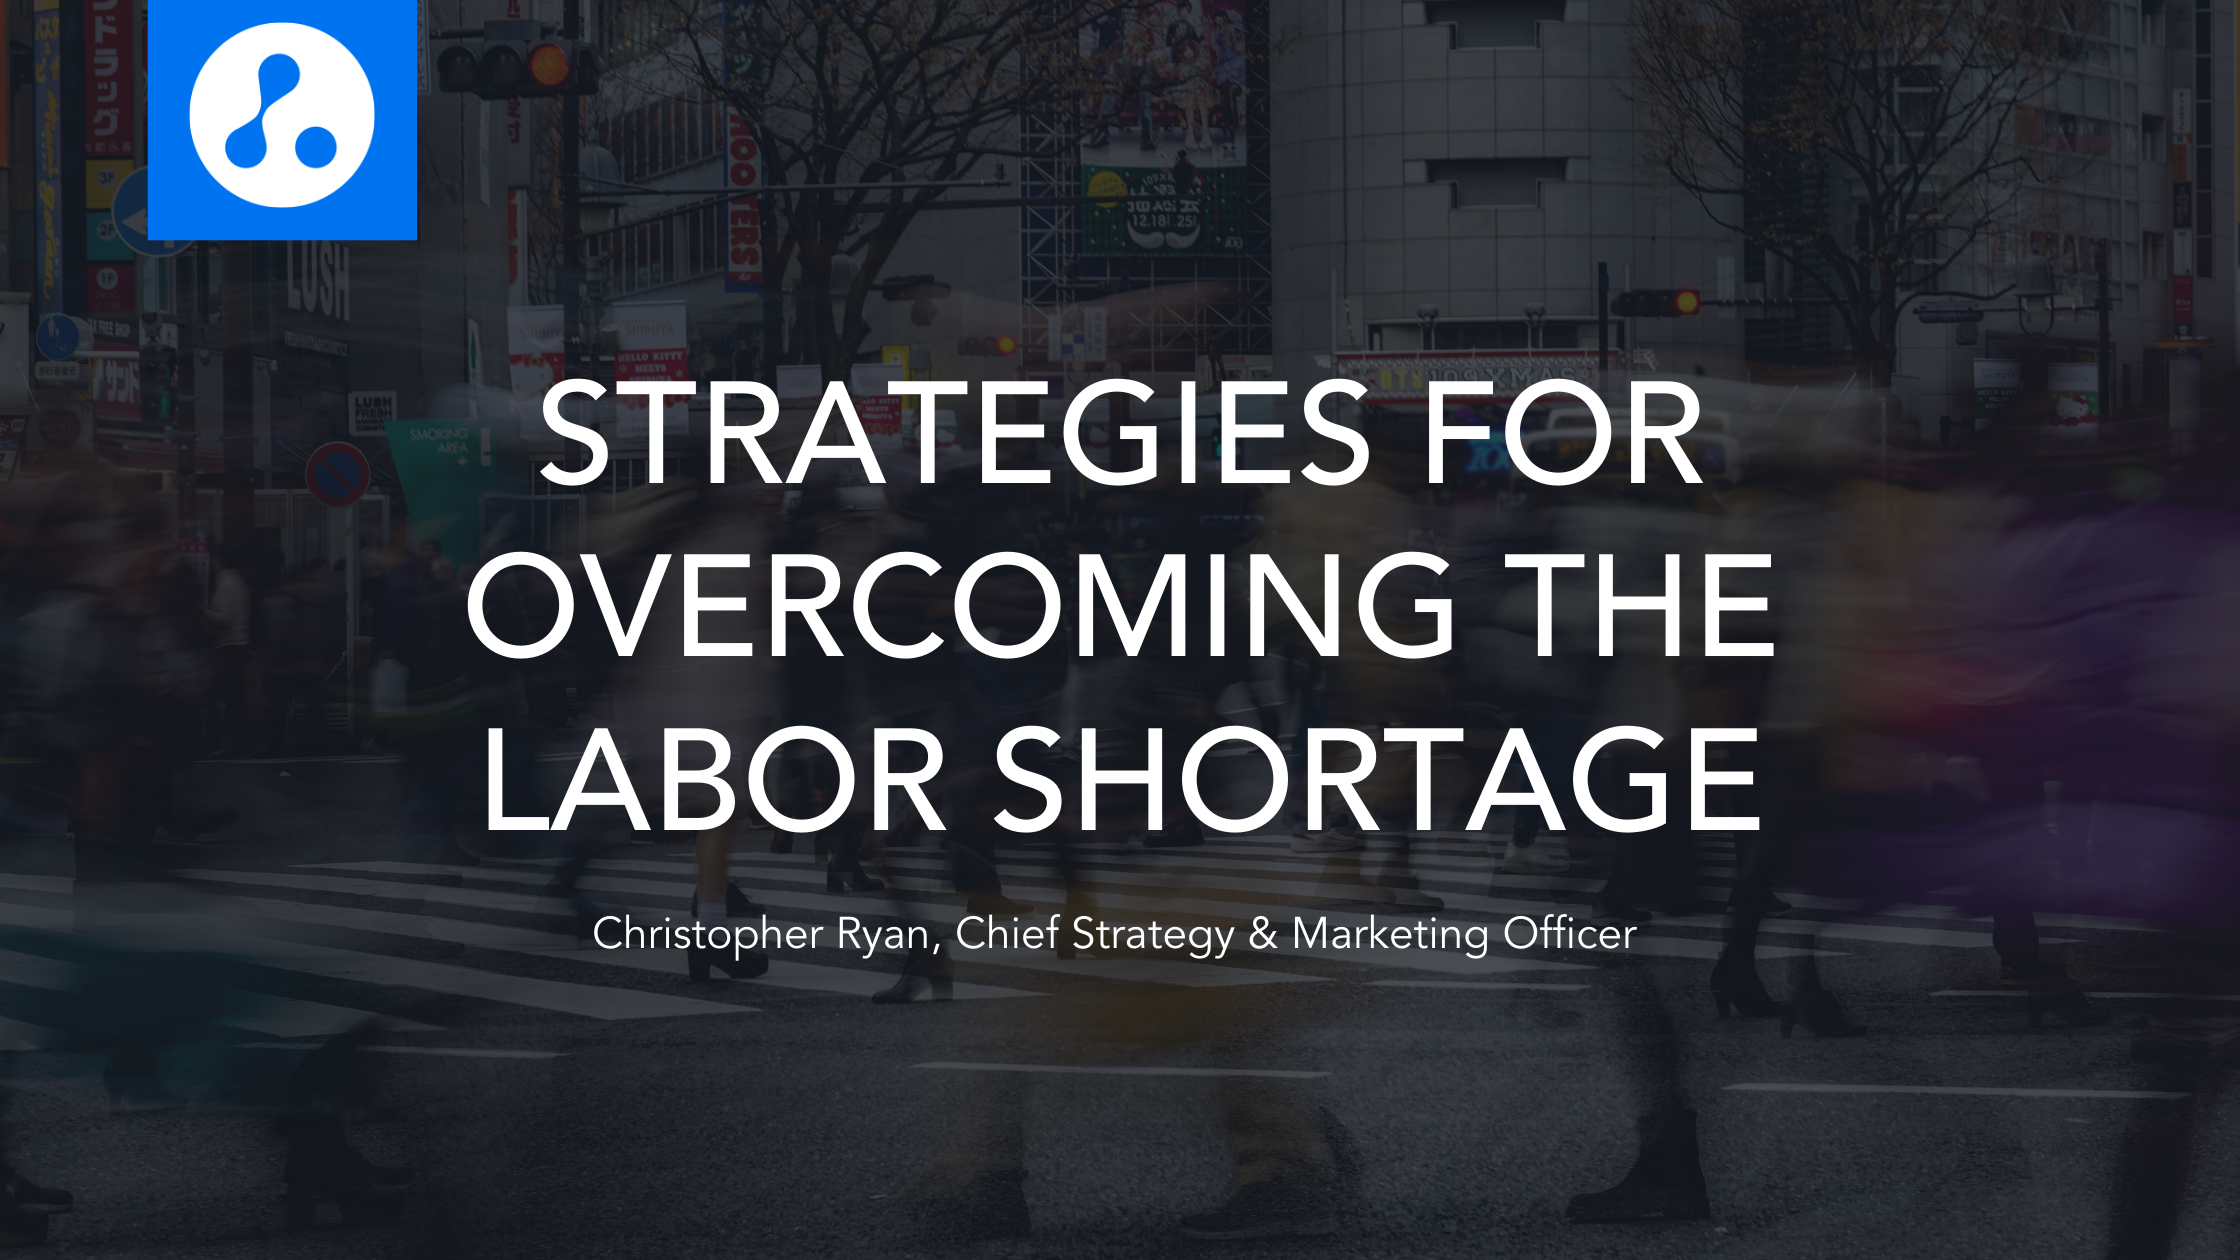 Strategies for overcoming labor shortages in us